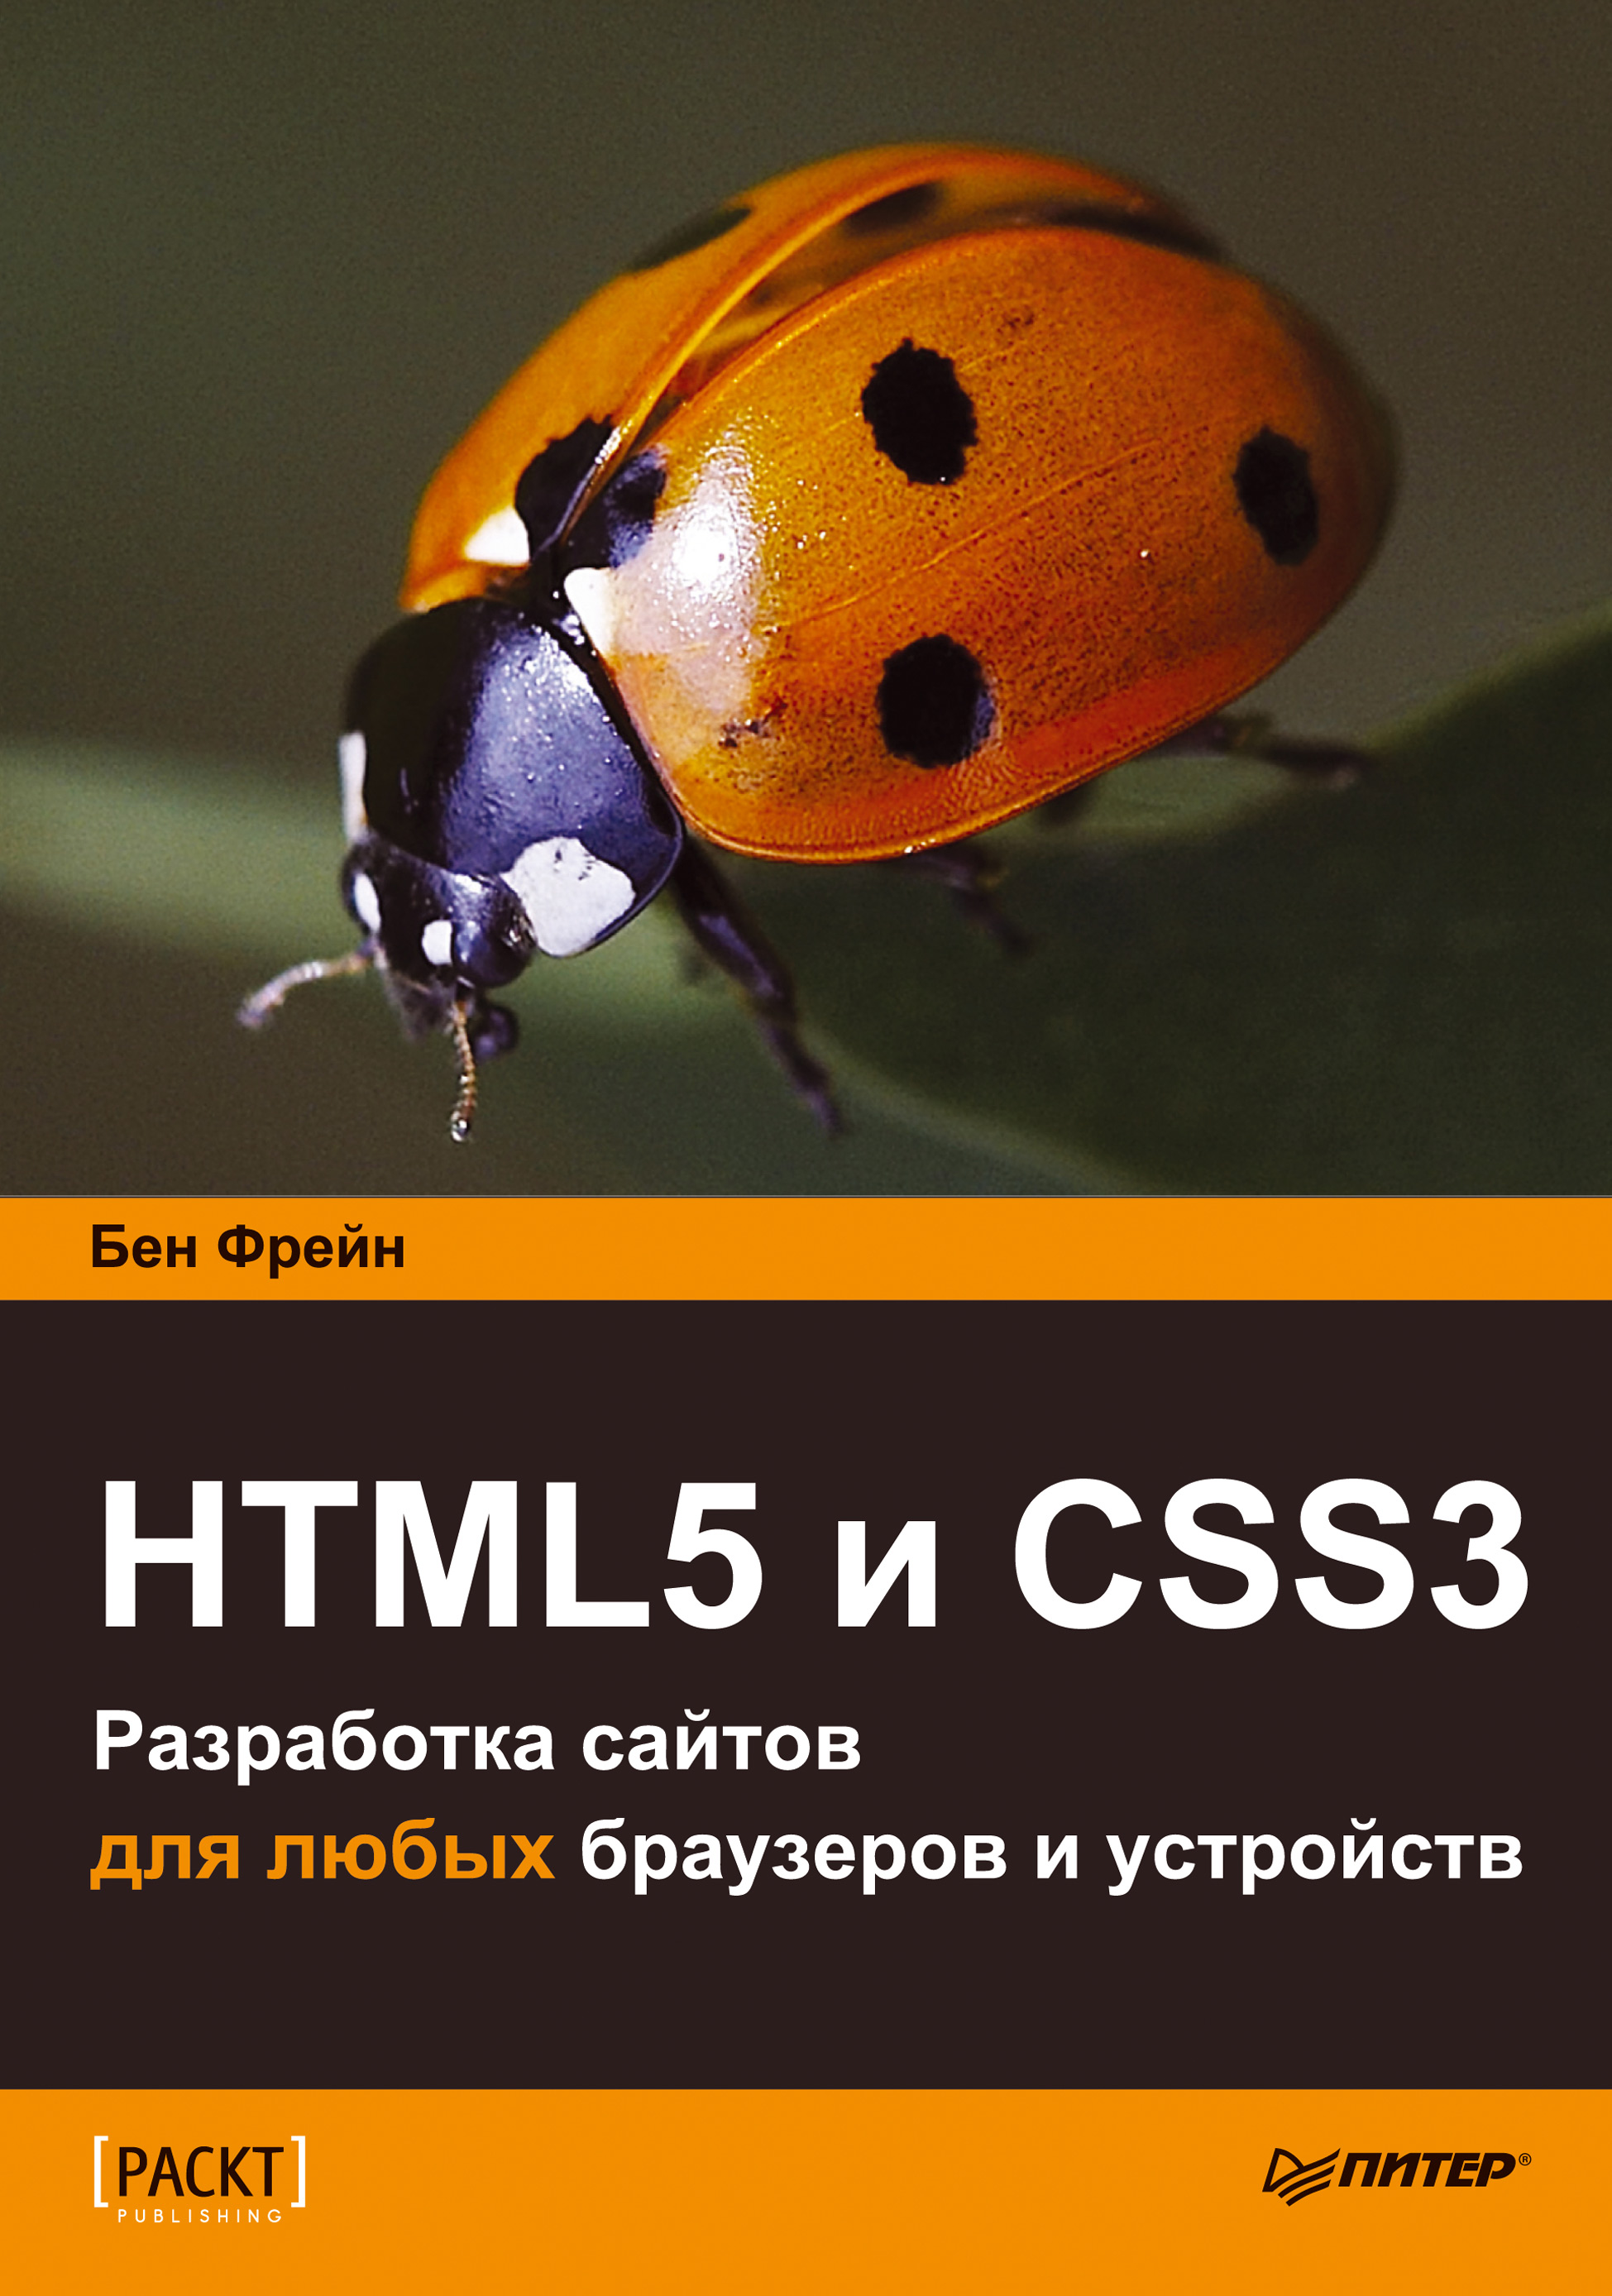 Бен Фрейн HTML5 и CSS3. Разработка сайтов для любых браузеров и устройств 30pcs lot by dhl or fedex dps3005 communication function step down buck voltage converter lcd voltmeter 40%off